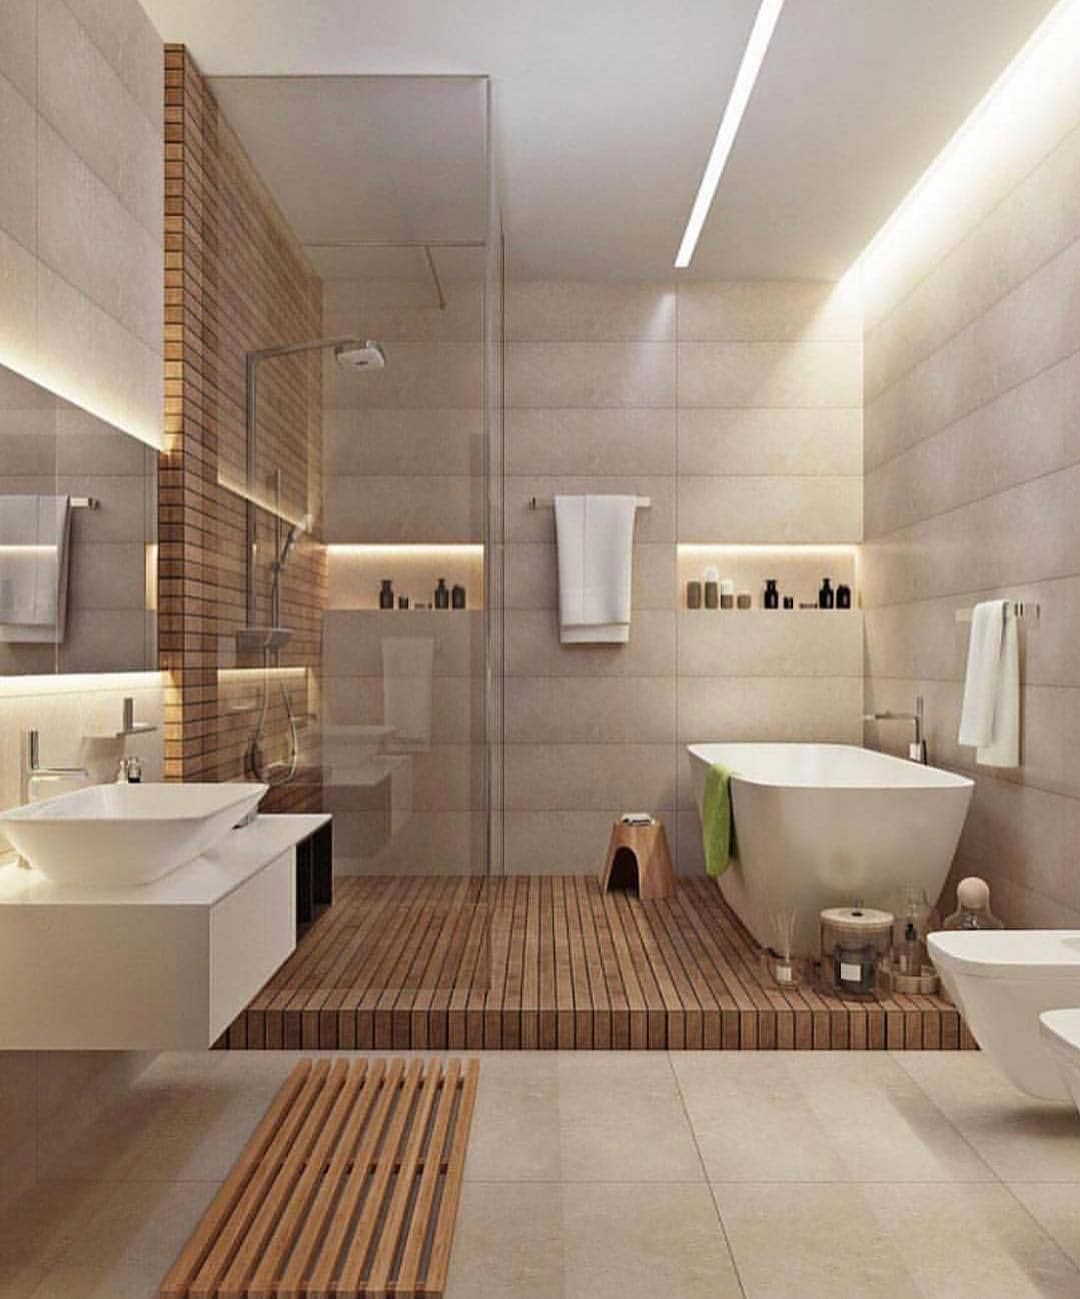 What Do You Think About This Bathroom Design Follow Studioantonini Dm Us To Connec Modern Bathroom Design Bathroom Interior Design Small Master Bathroom